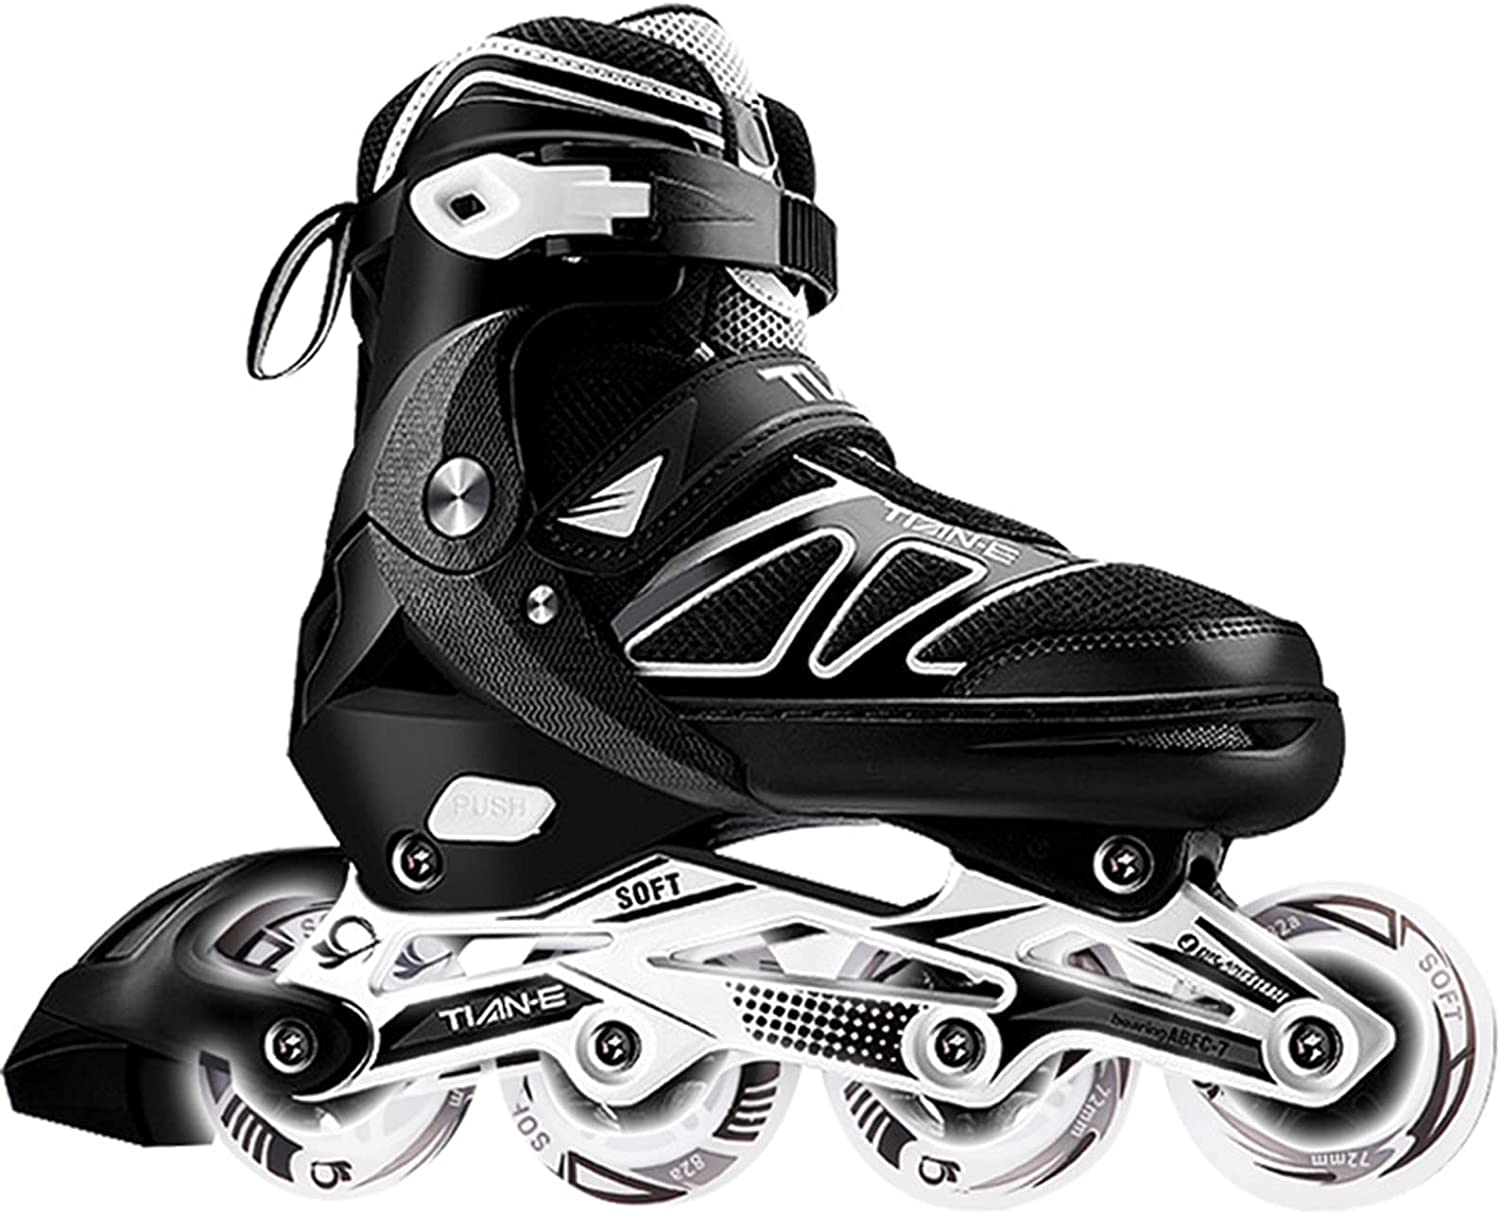 Adjustable Roller Blades Skates Tucson Mall Deluxe for Outdoor Kids Indoor Adults